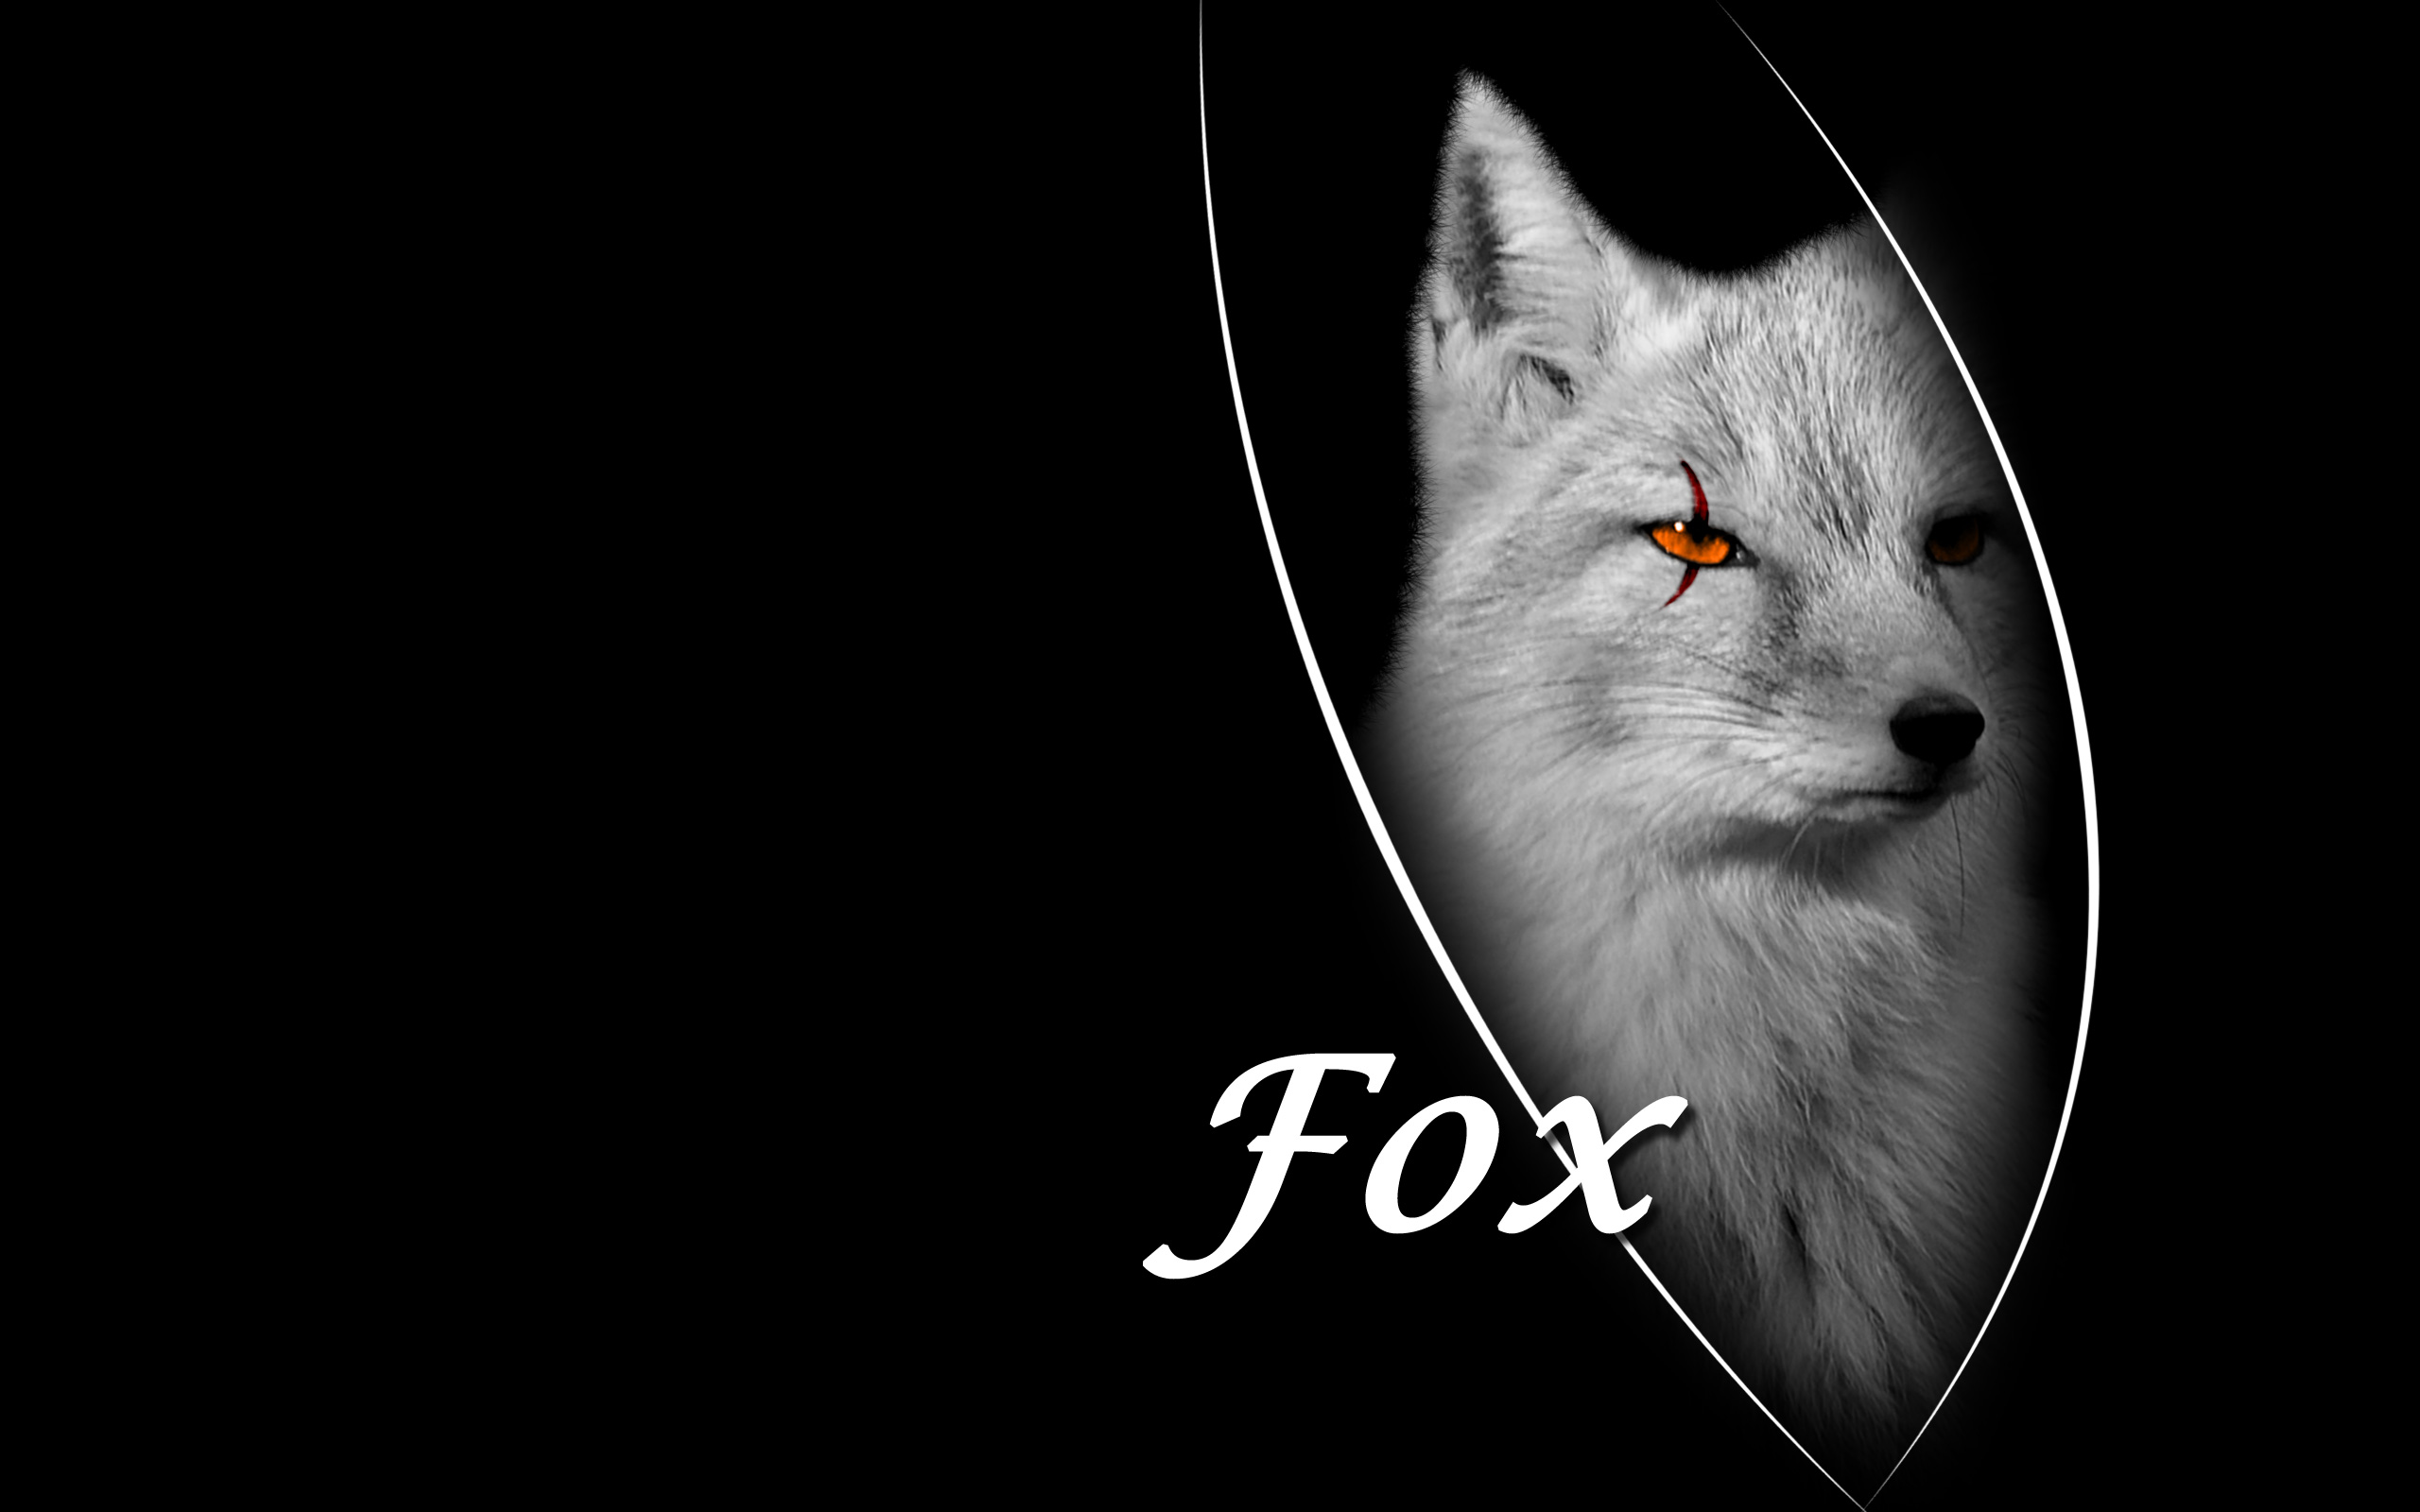 Cool Animated Pubg Wallpapers Fox Wallpapers Fox Stock Photos